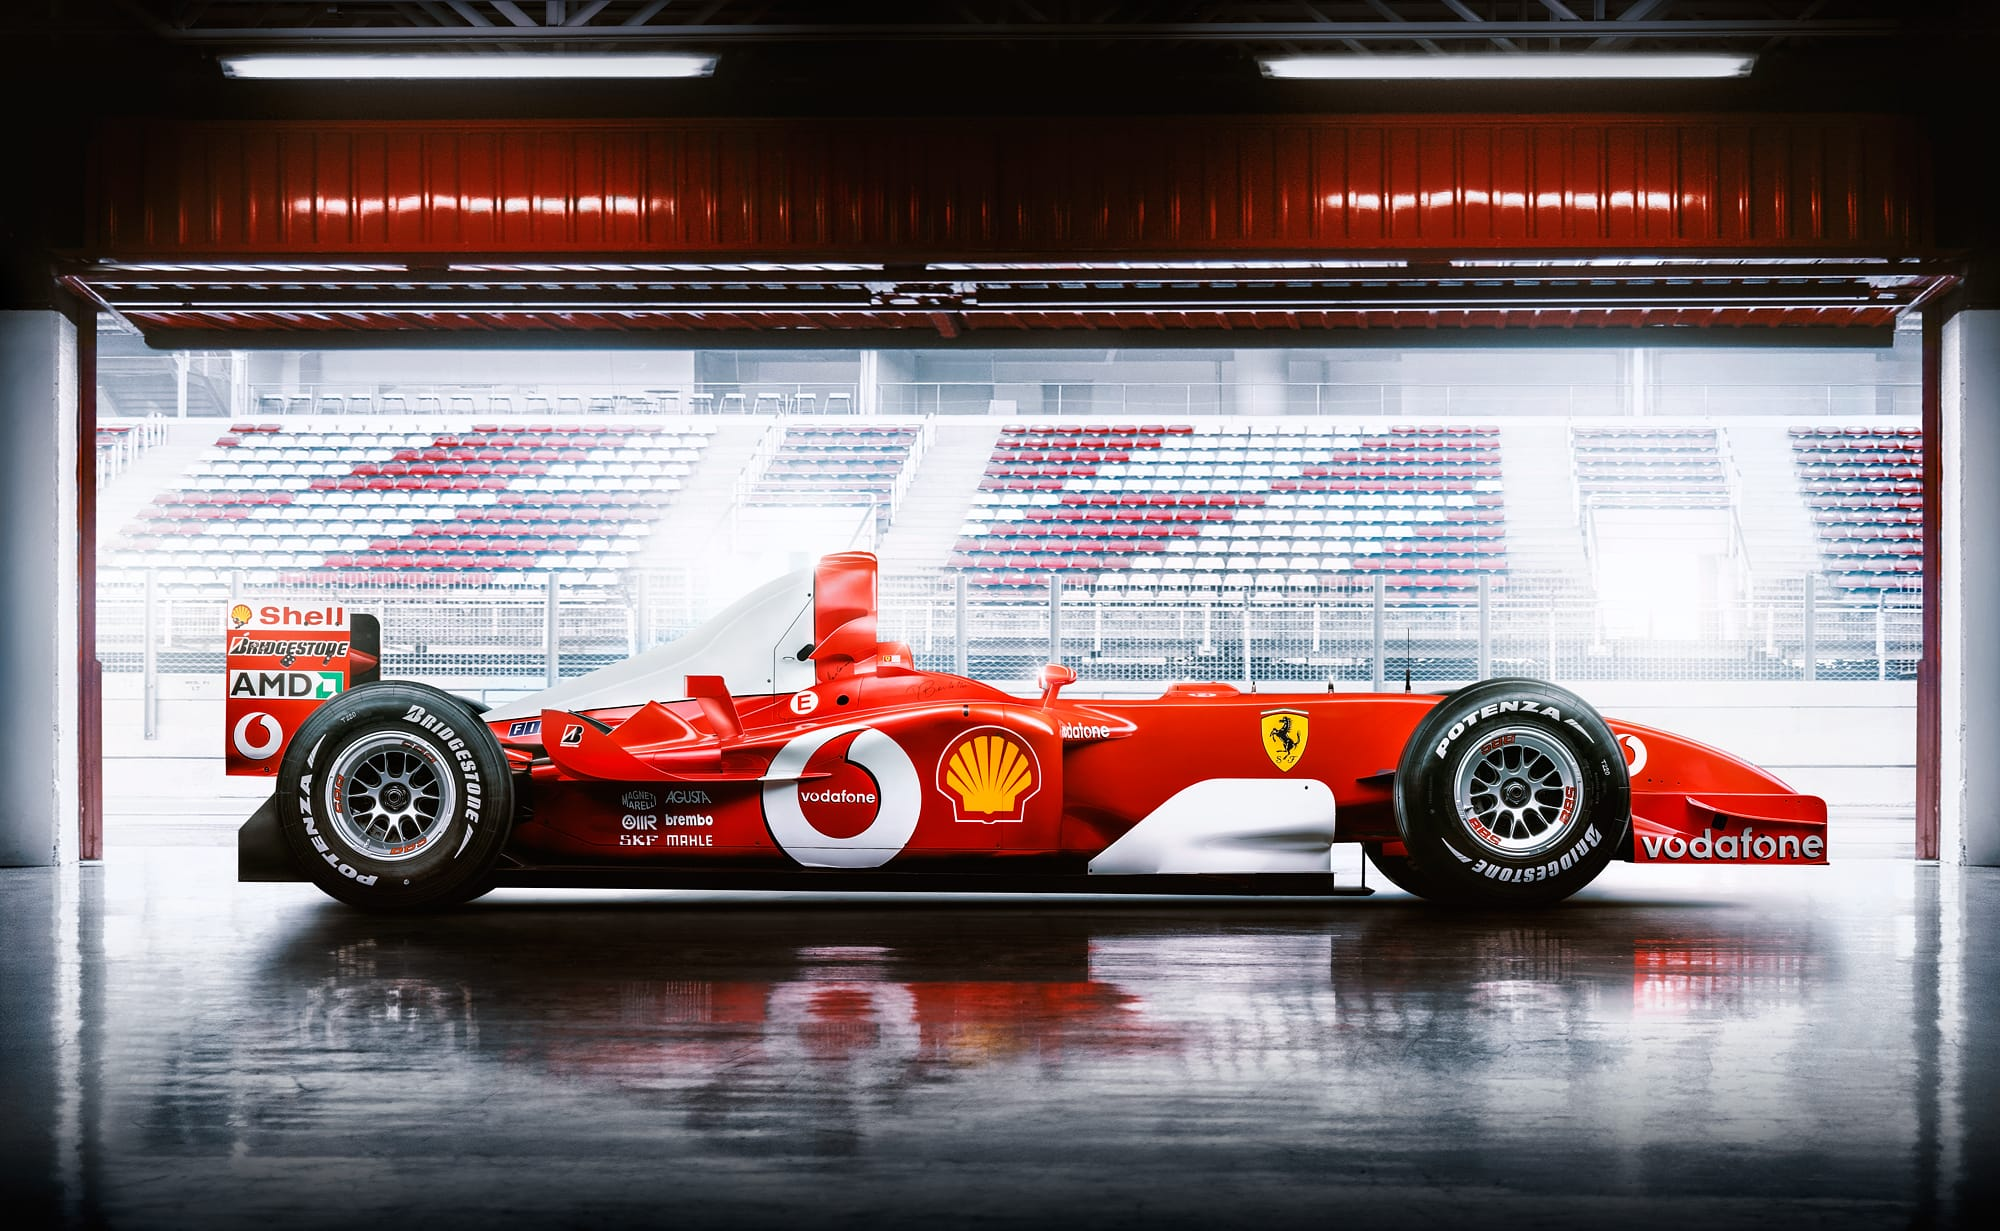 Michael Schumacher photographed by Automotive Photographer